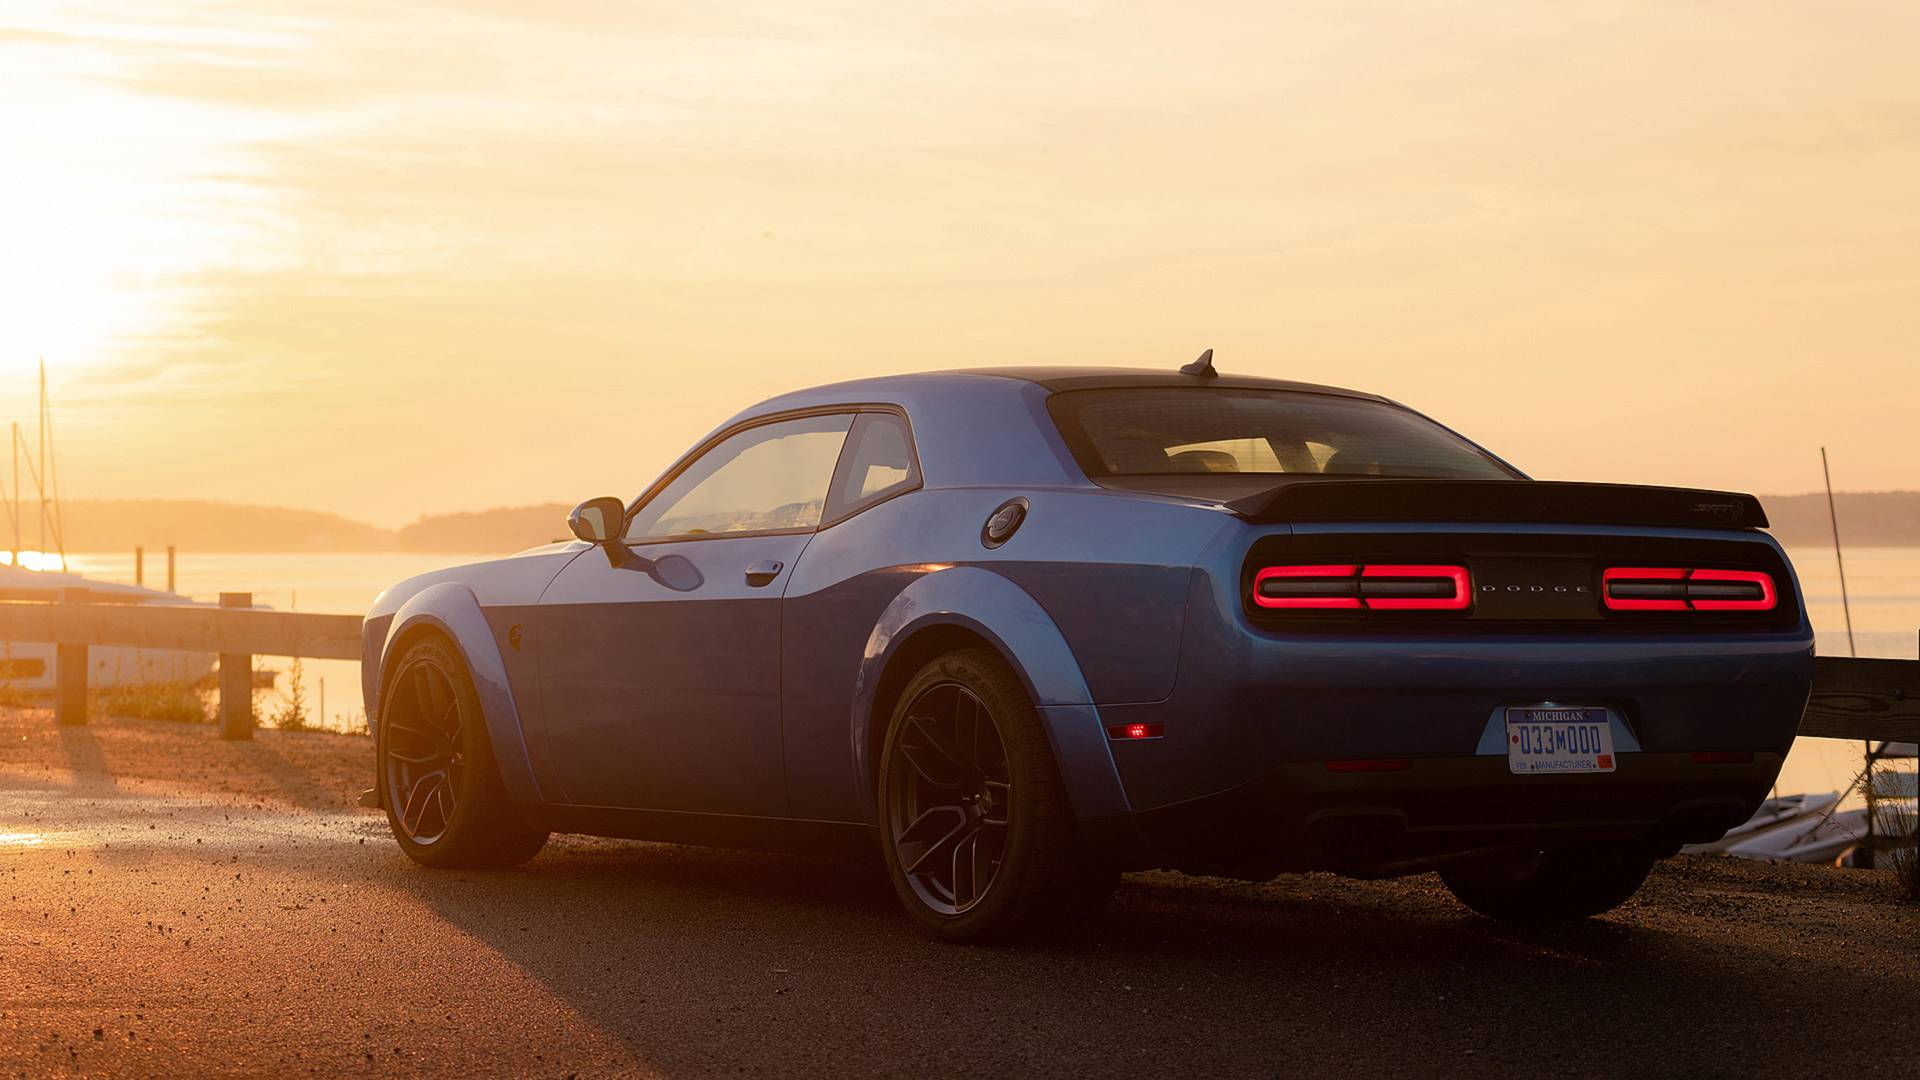 2019 Dodge Challenger SRT Hellcat Redeye First Drive: Demon Spawn